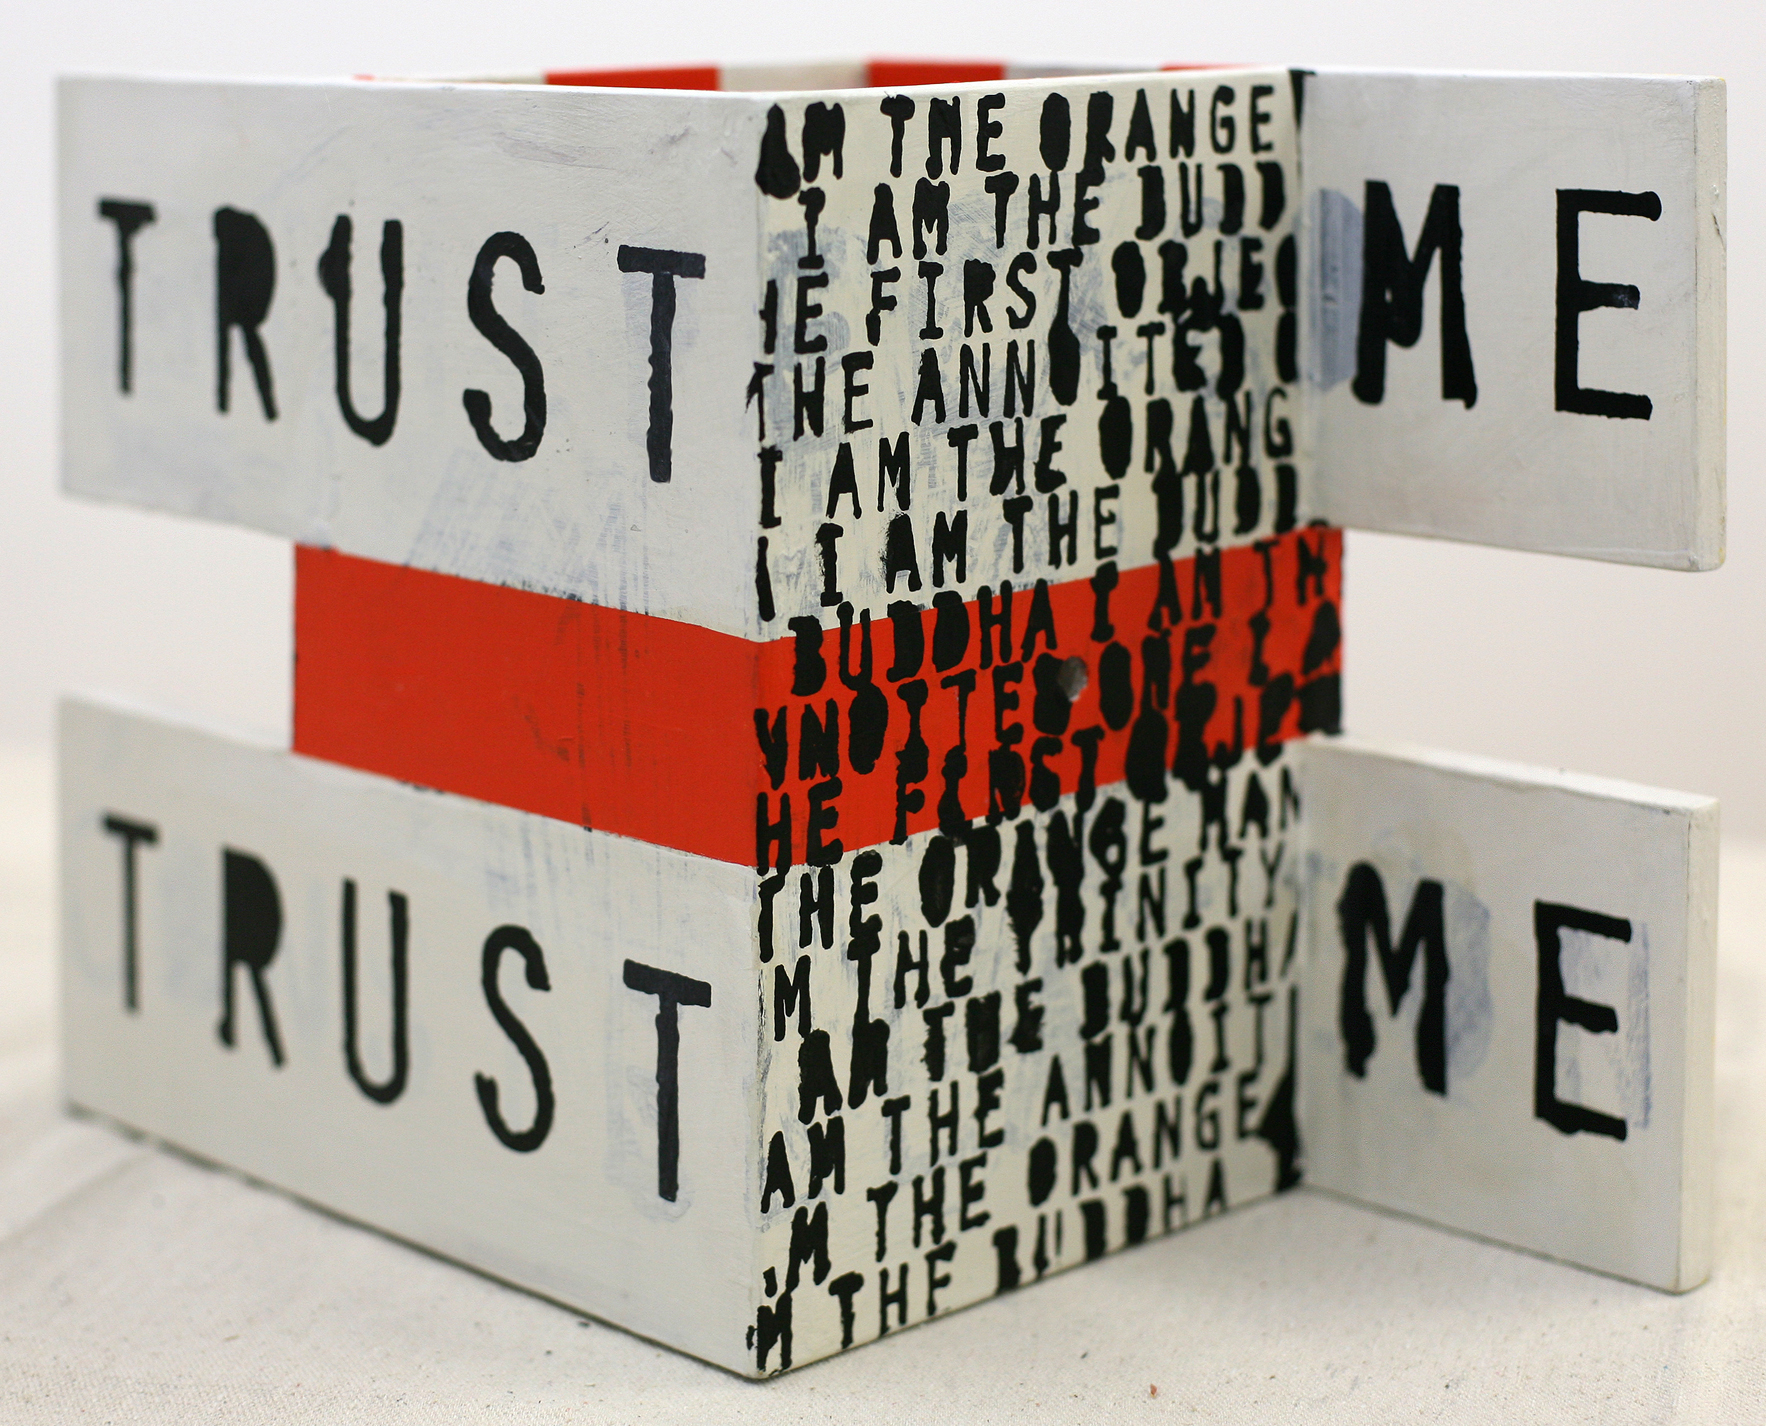 Trust Me, polychrome wood, 2012 (private collection)